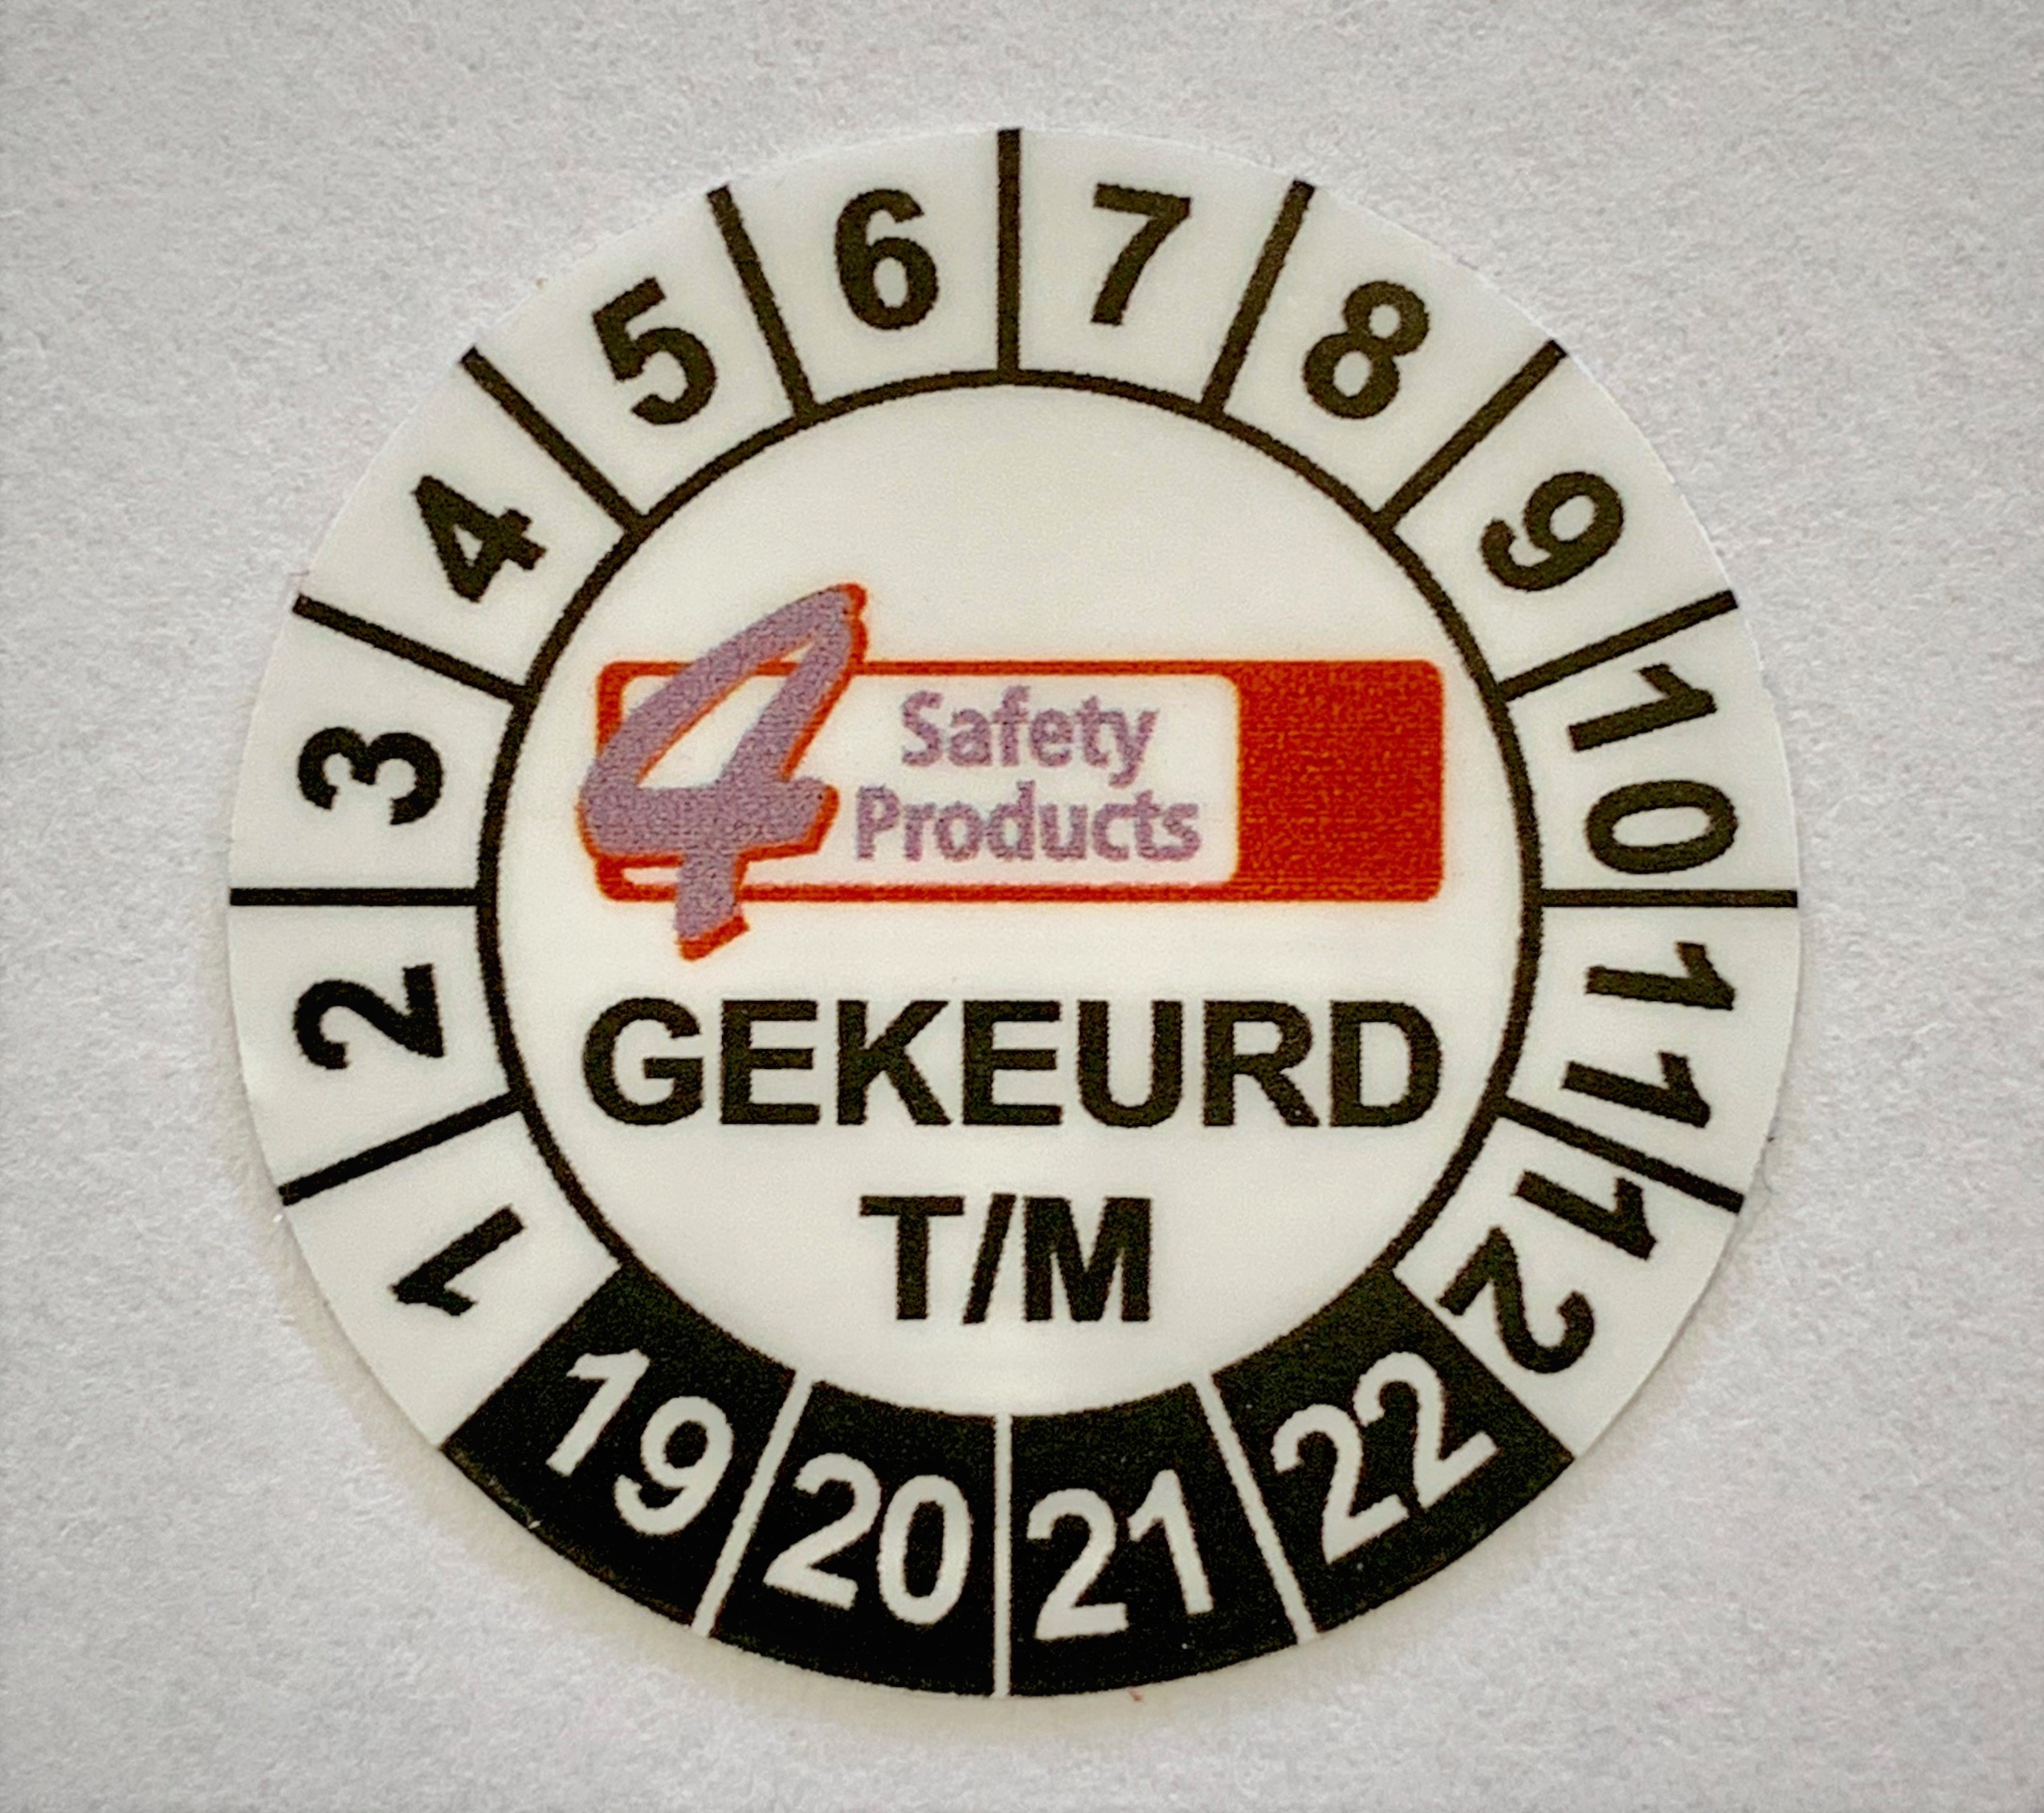 Keuren 4 Safety Products Geleen